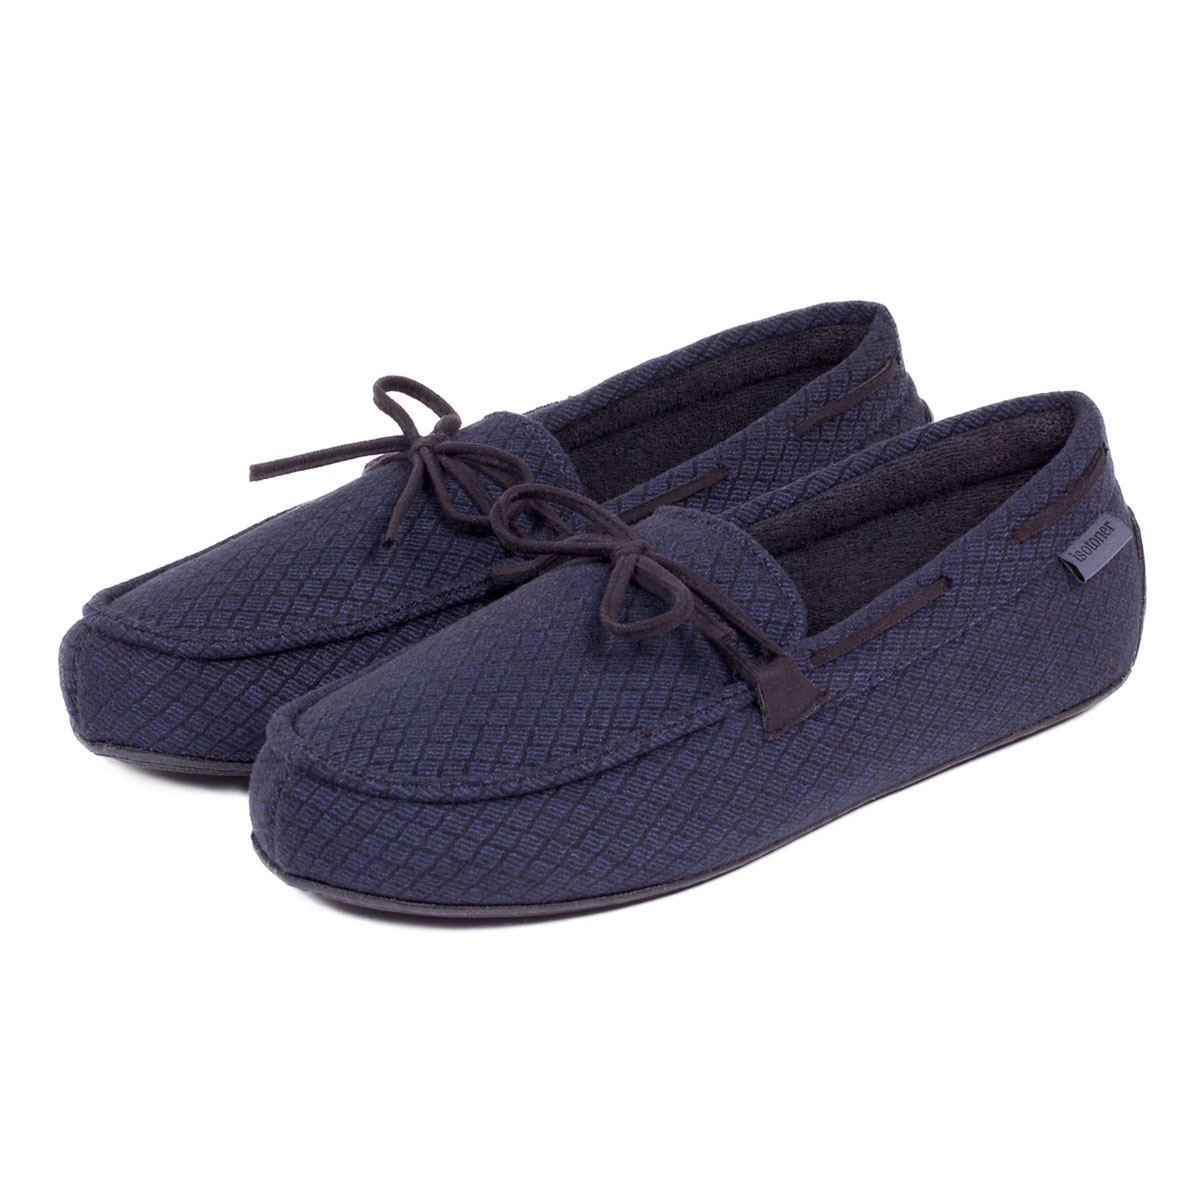 Isotoner Mens Driving Moccasin Slippers Ebay